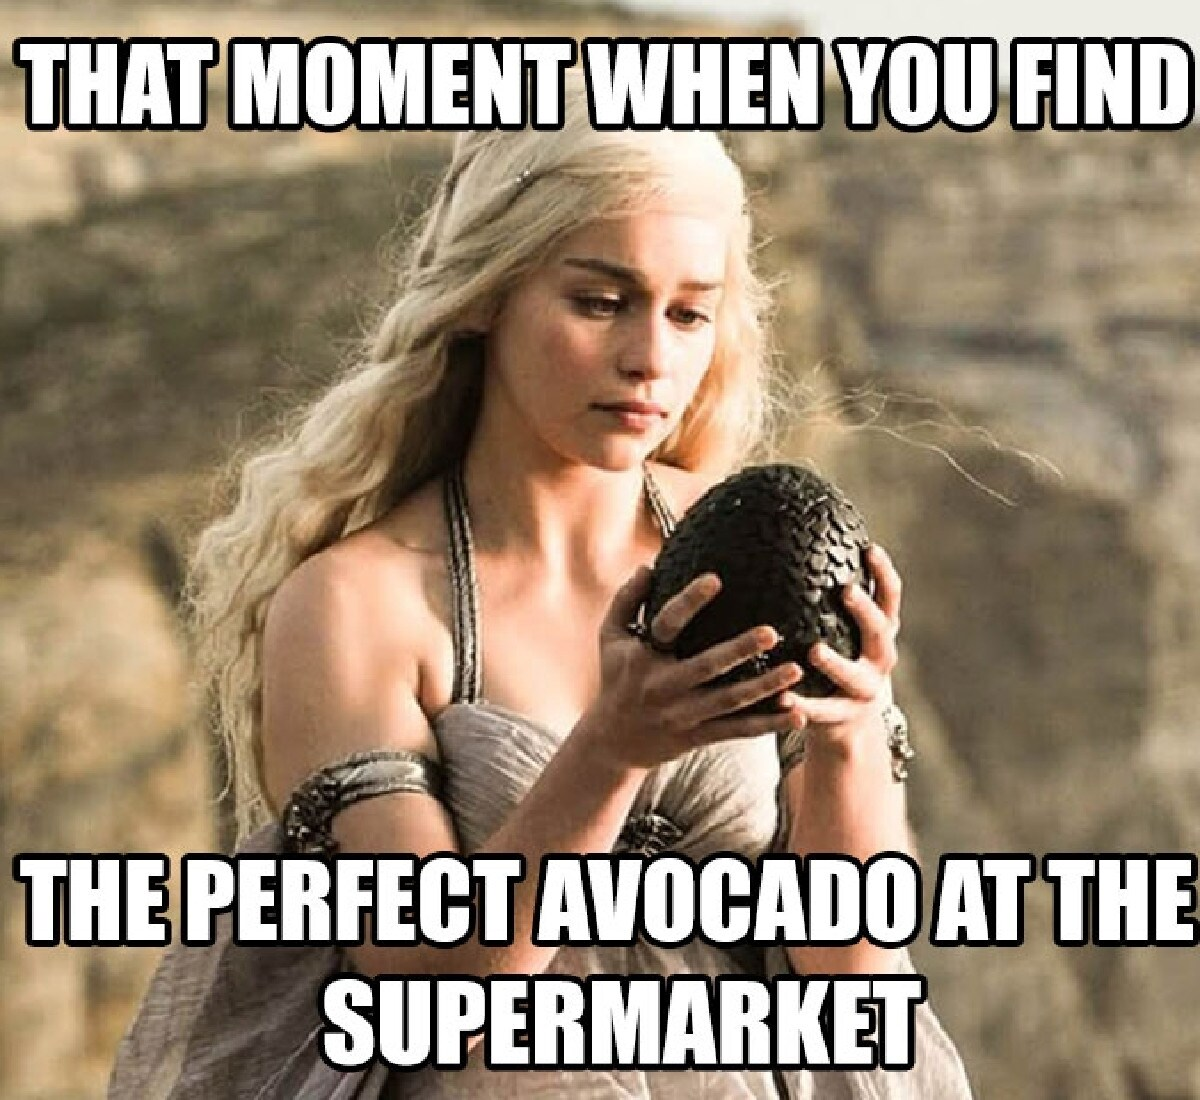 Av another go ... back when Dany was good and the memes were too.